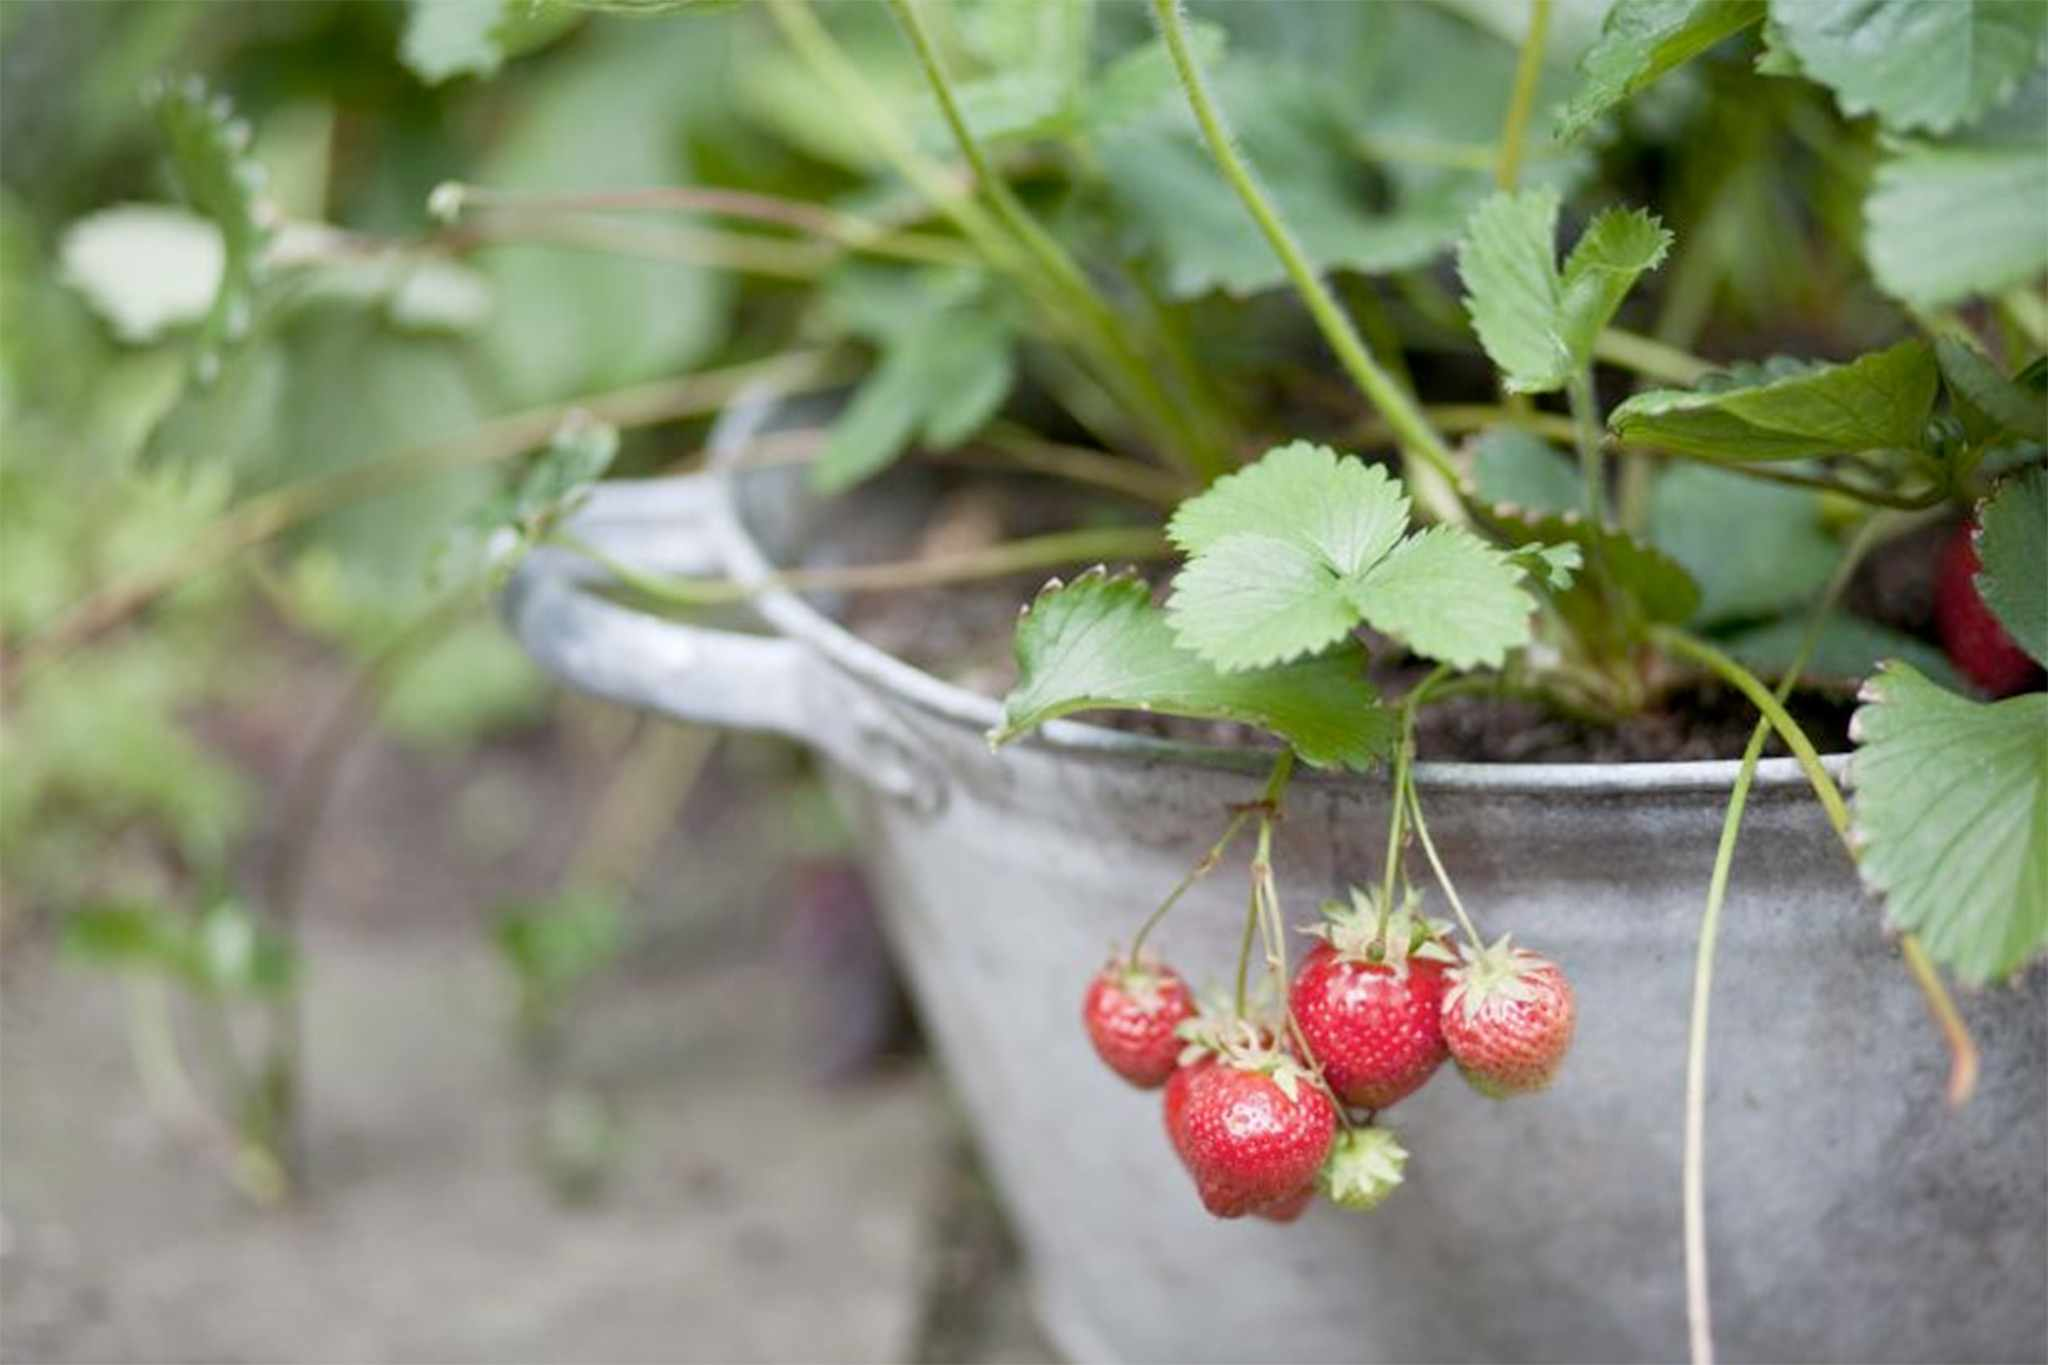 Strawberries growing in a container